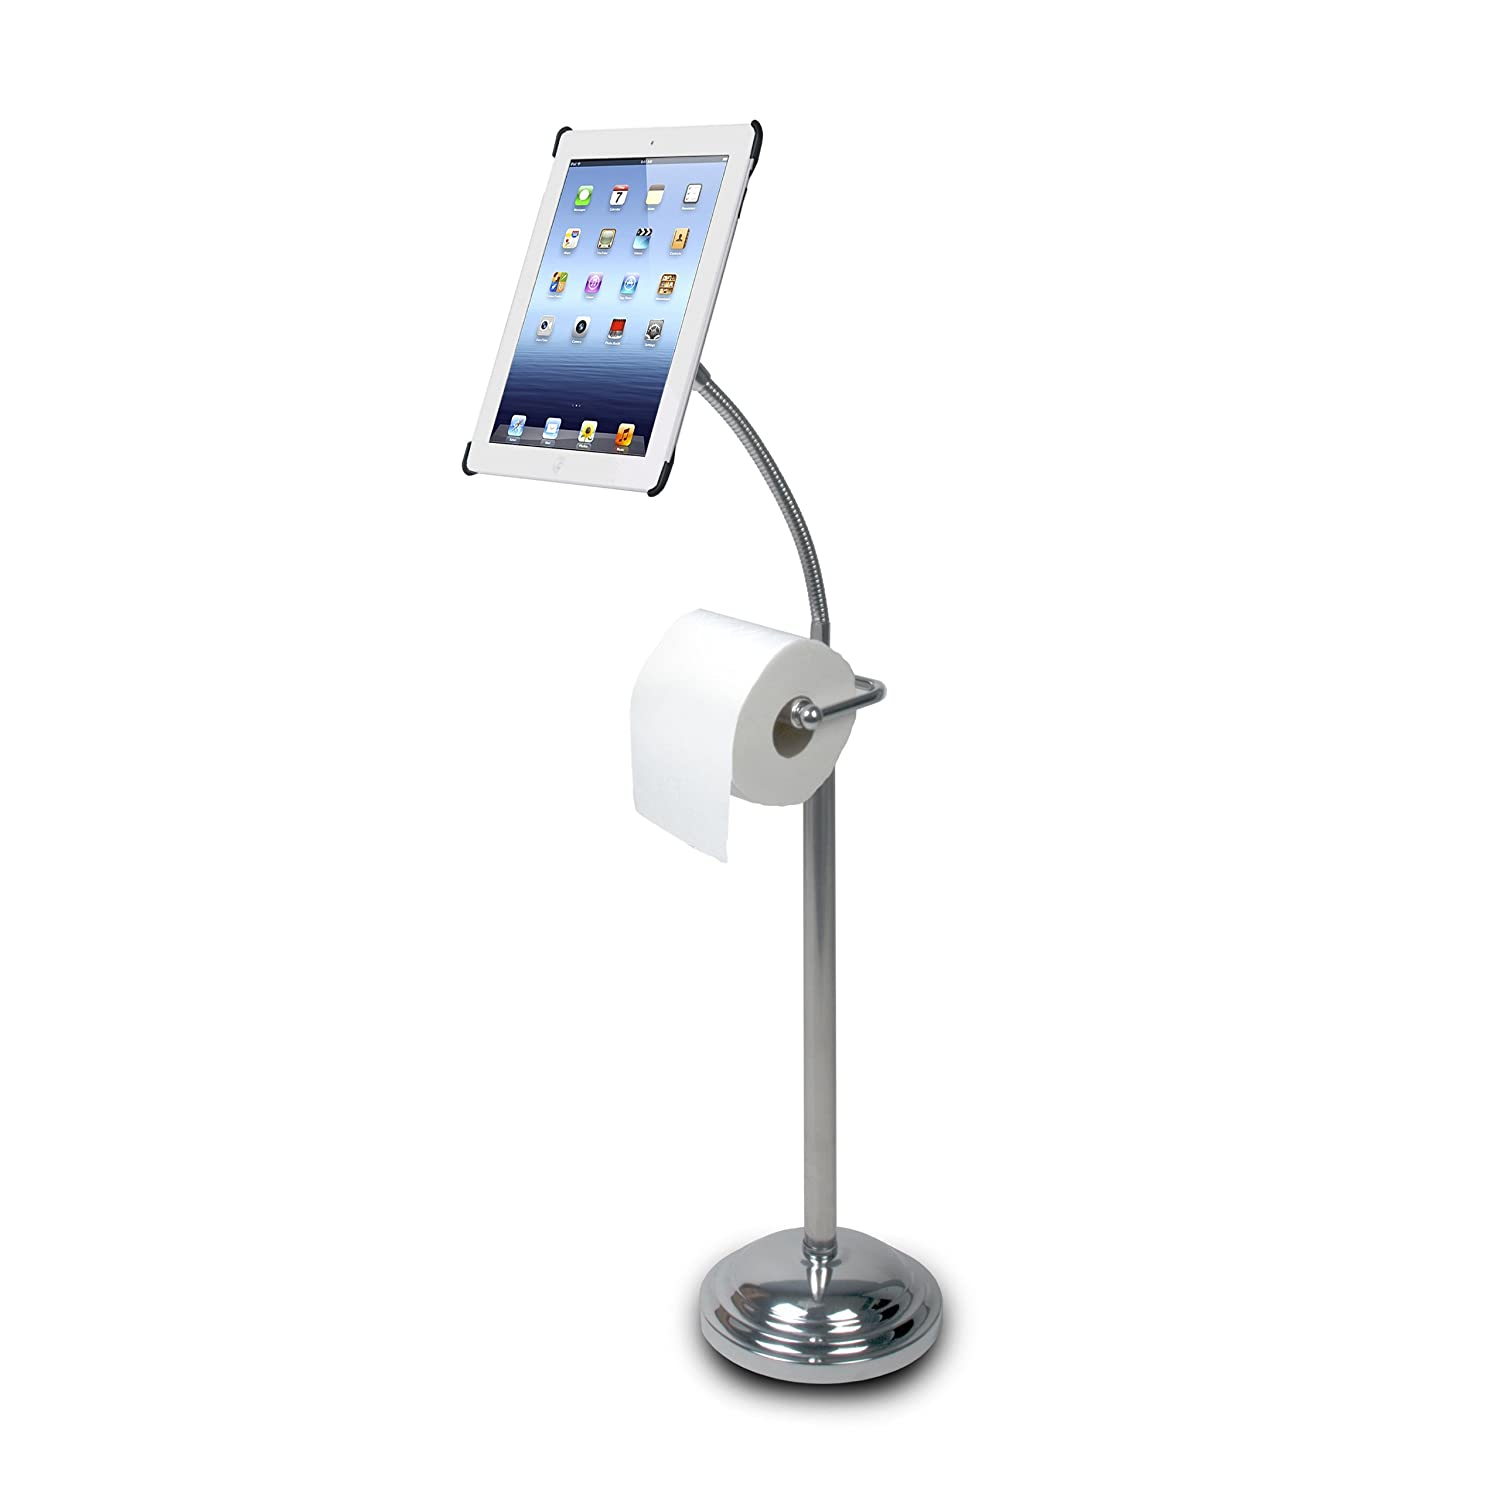 Modern toilet paper holders free standing - Unique Free Standing Toilet Paper Holder Stupefy For Modern Bathroom Remodel Appliance Interior Ideas Amazon Com Cta Digital Pedestal Stand For Ipad 2 3 4